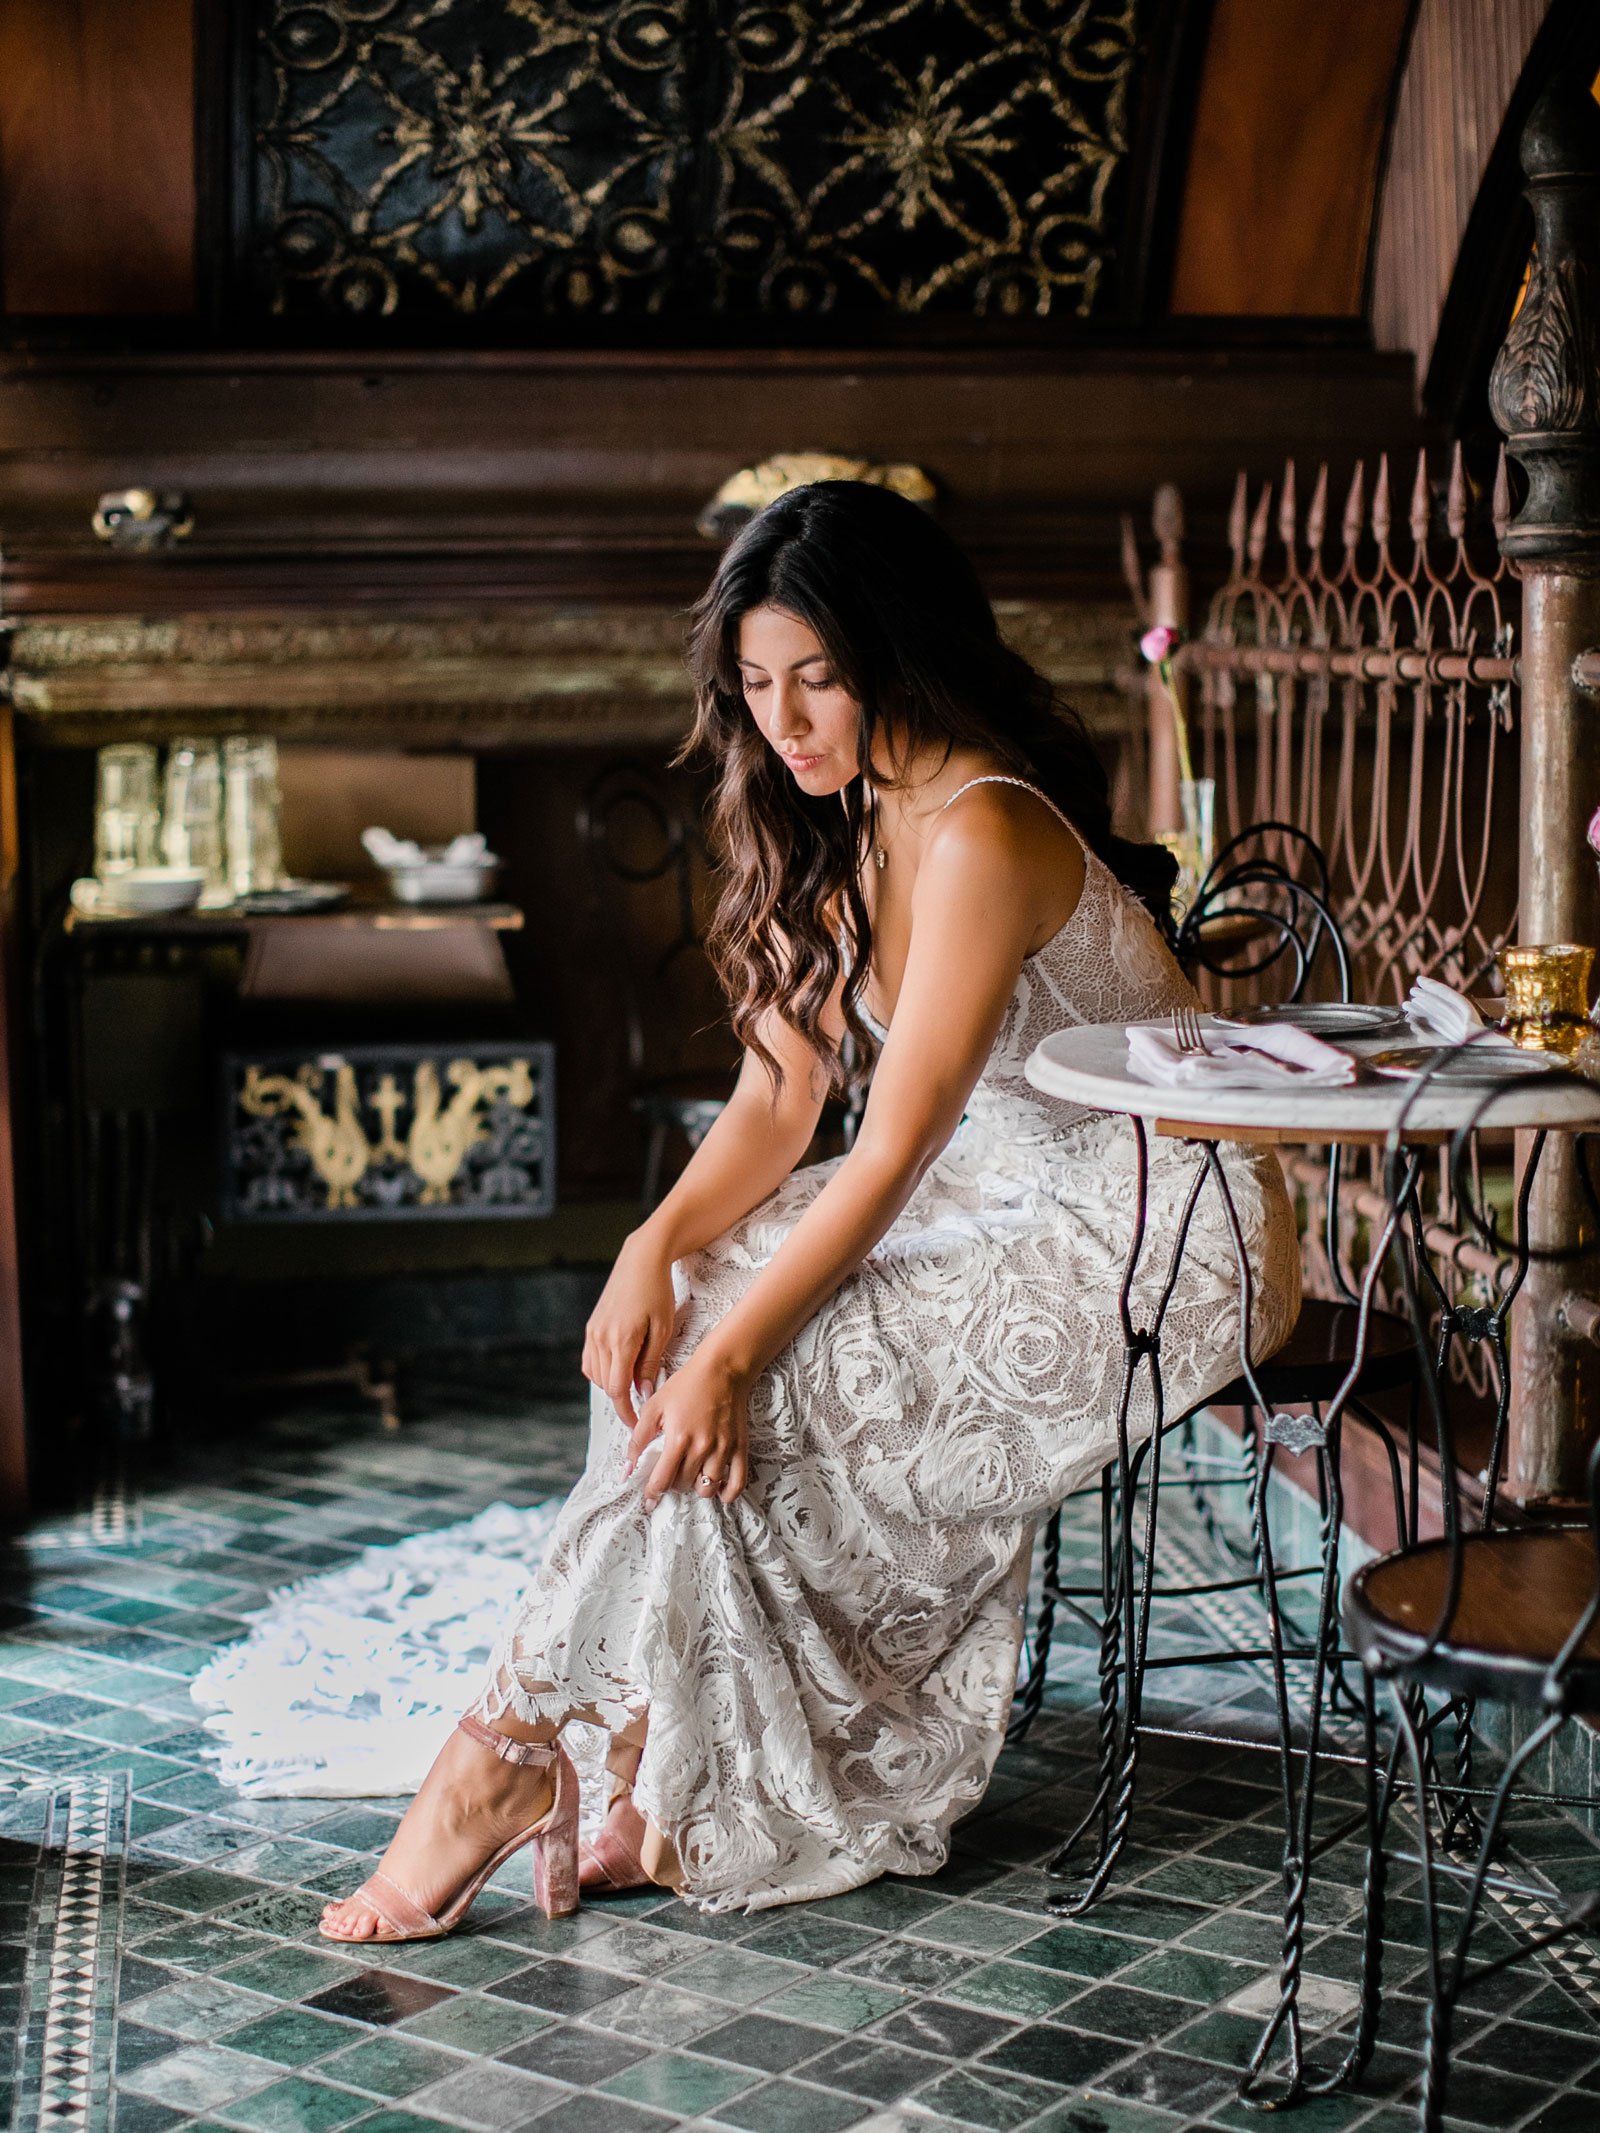 Stephanie Beatriz 's wedding to  Brad Hoss.  This image was taken at   The Wolves   in Downtown Los Angeles. (Credit: Shauntelle Sposto / Sposto Photography)   See More